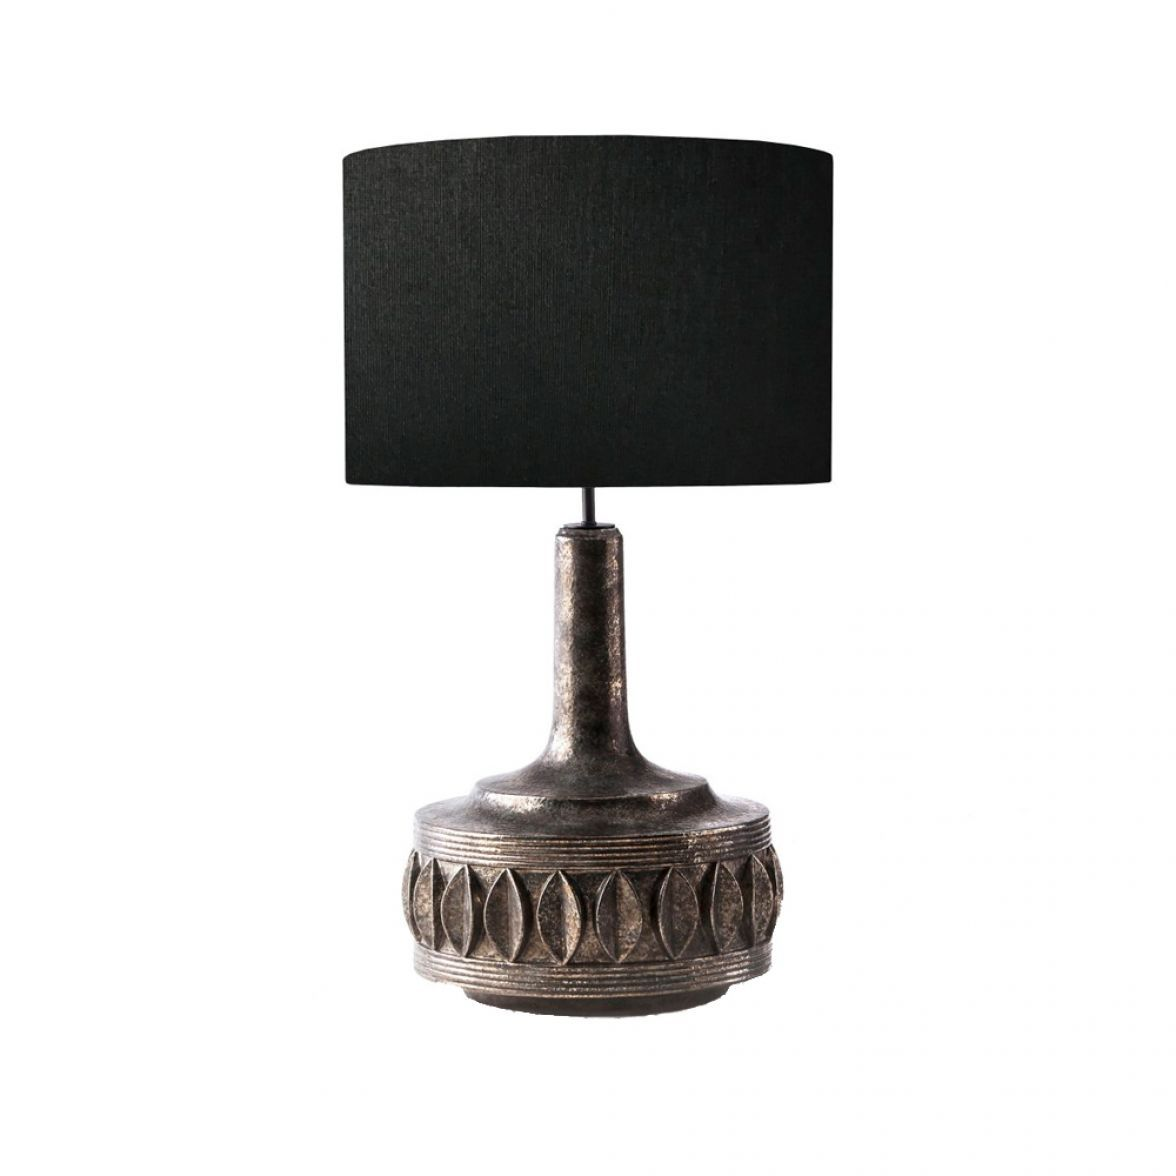 HOLLIE TABLE LAMP